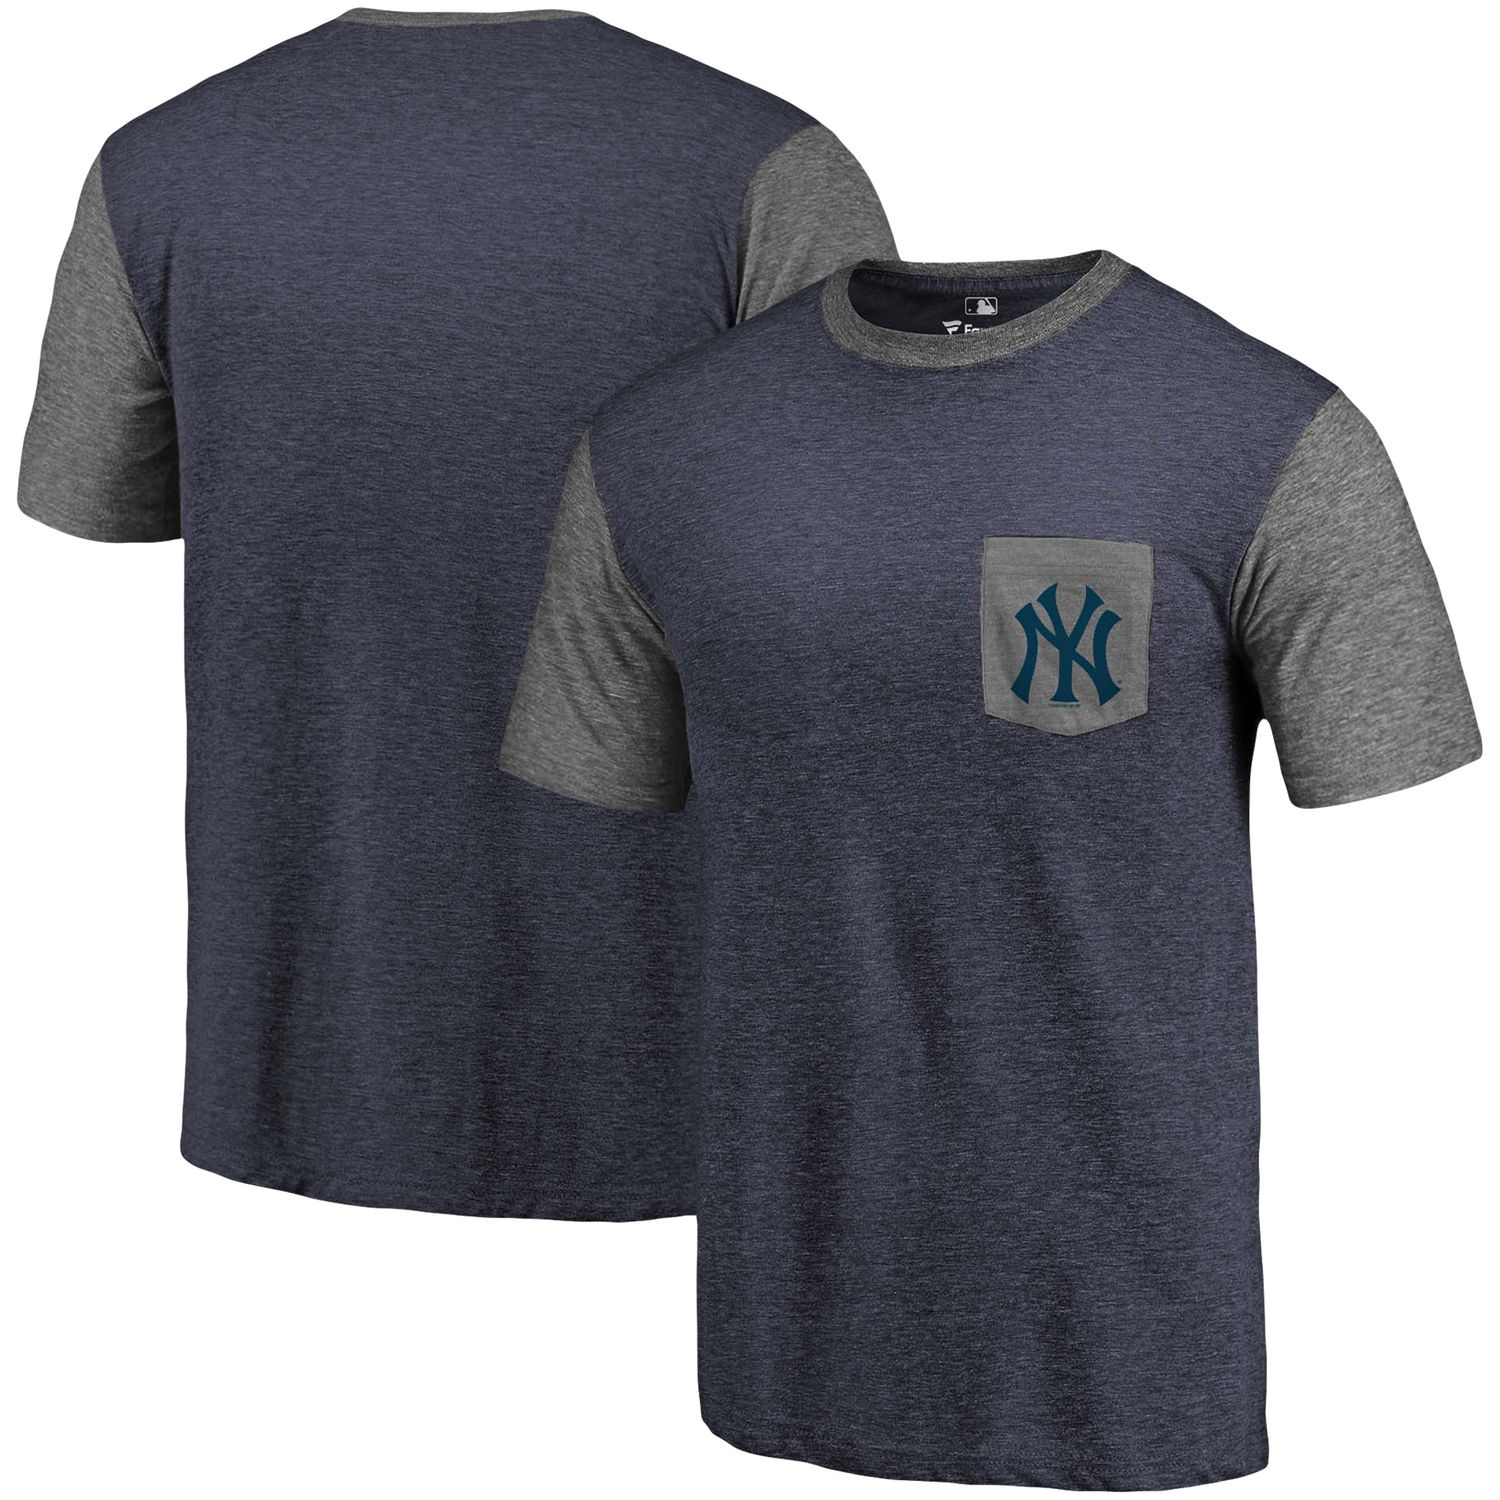 Men's New York Yankees Fanatics Branded Navy-Heathered Gray Refresh Pocket T-Shirt